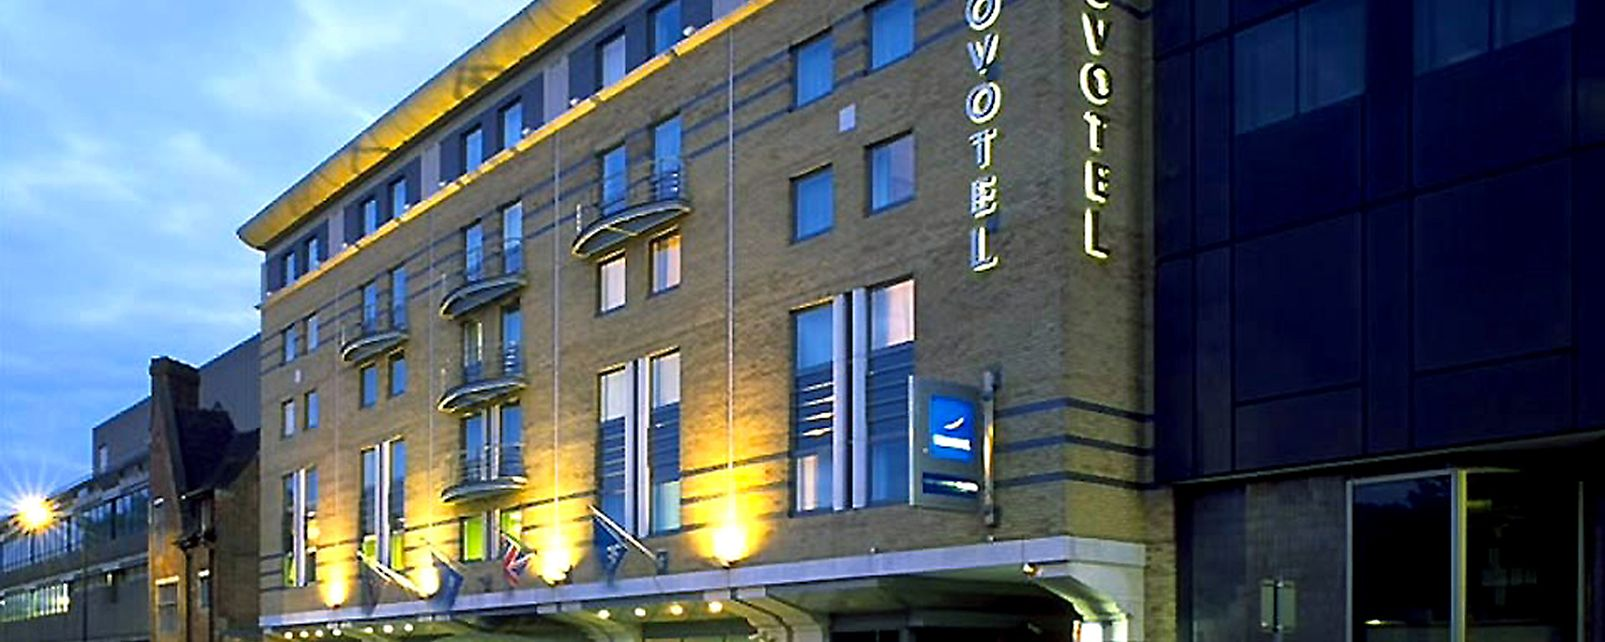 Hotel Novotel Waterloo